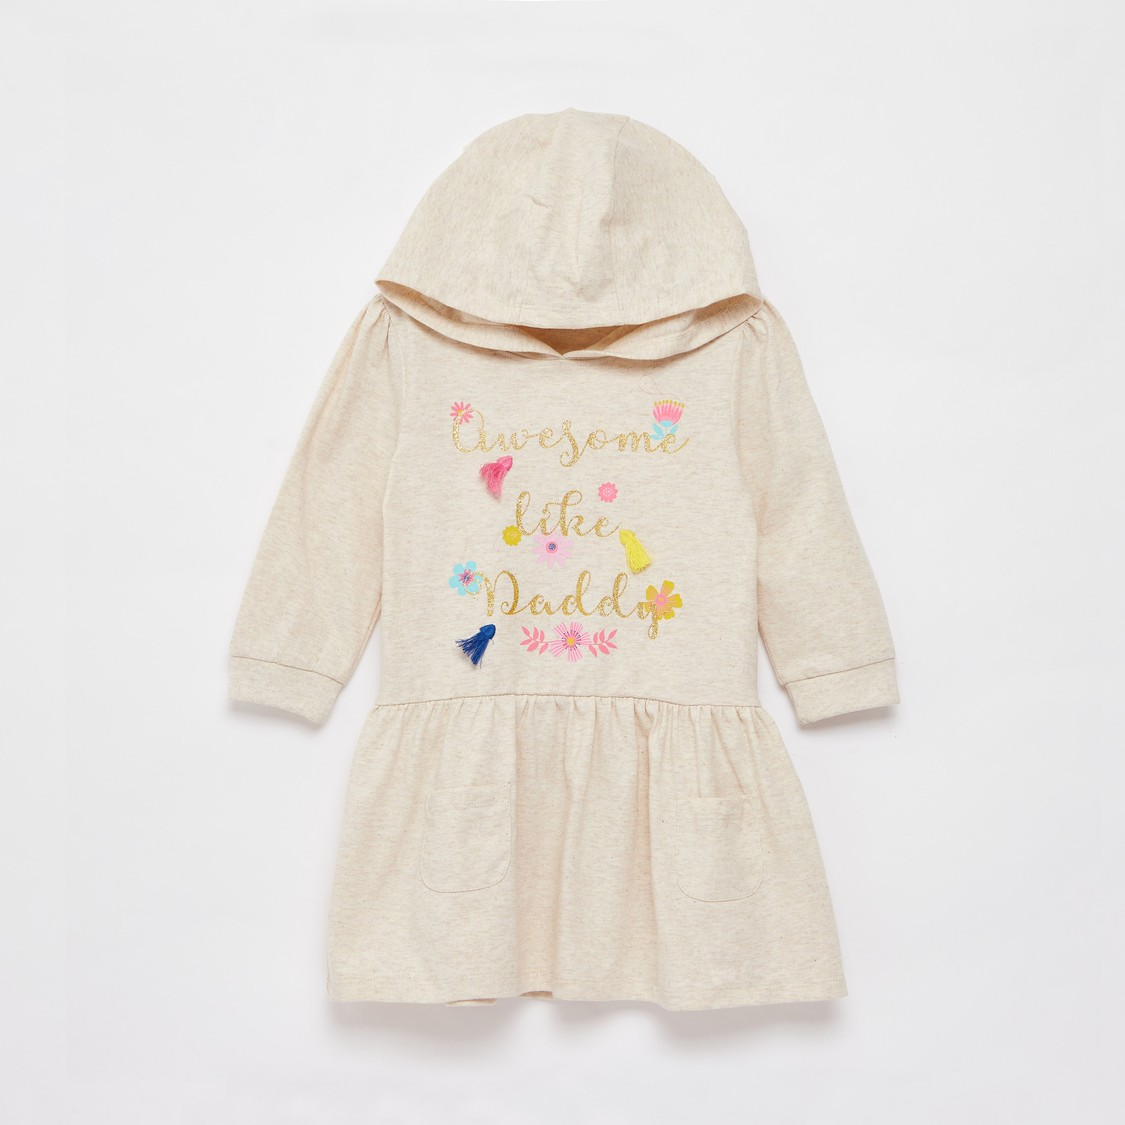 Slogan Print Knee-Length Dress with Hooded Neck and Long Sleeves